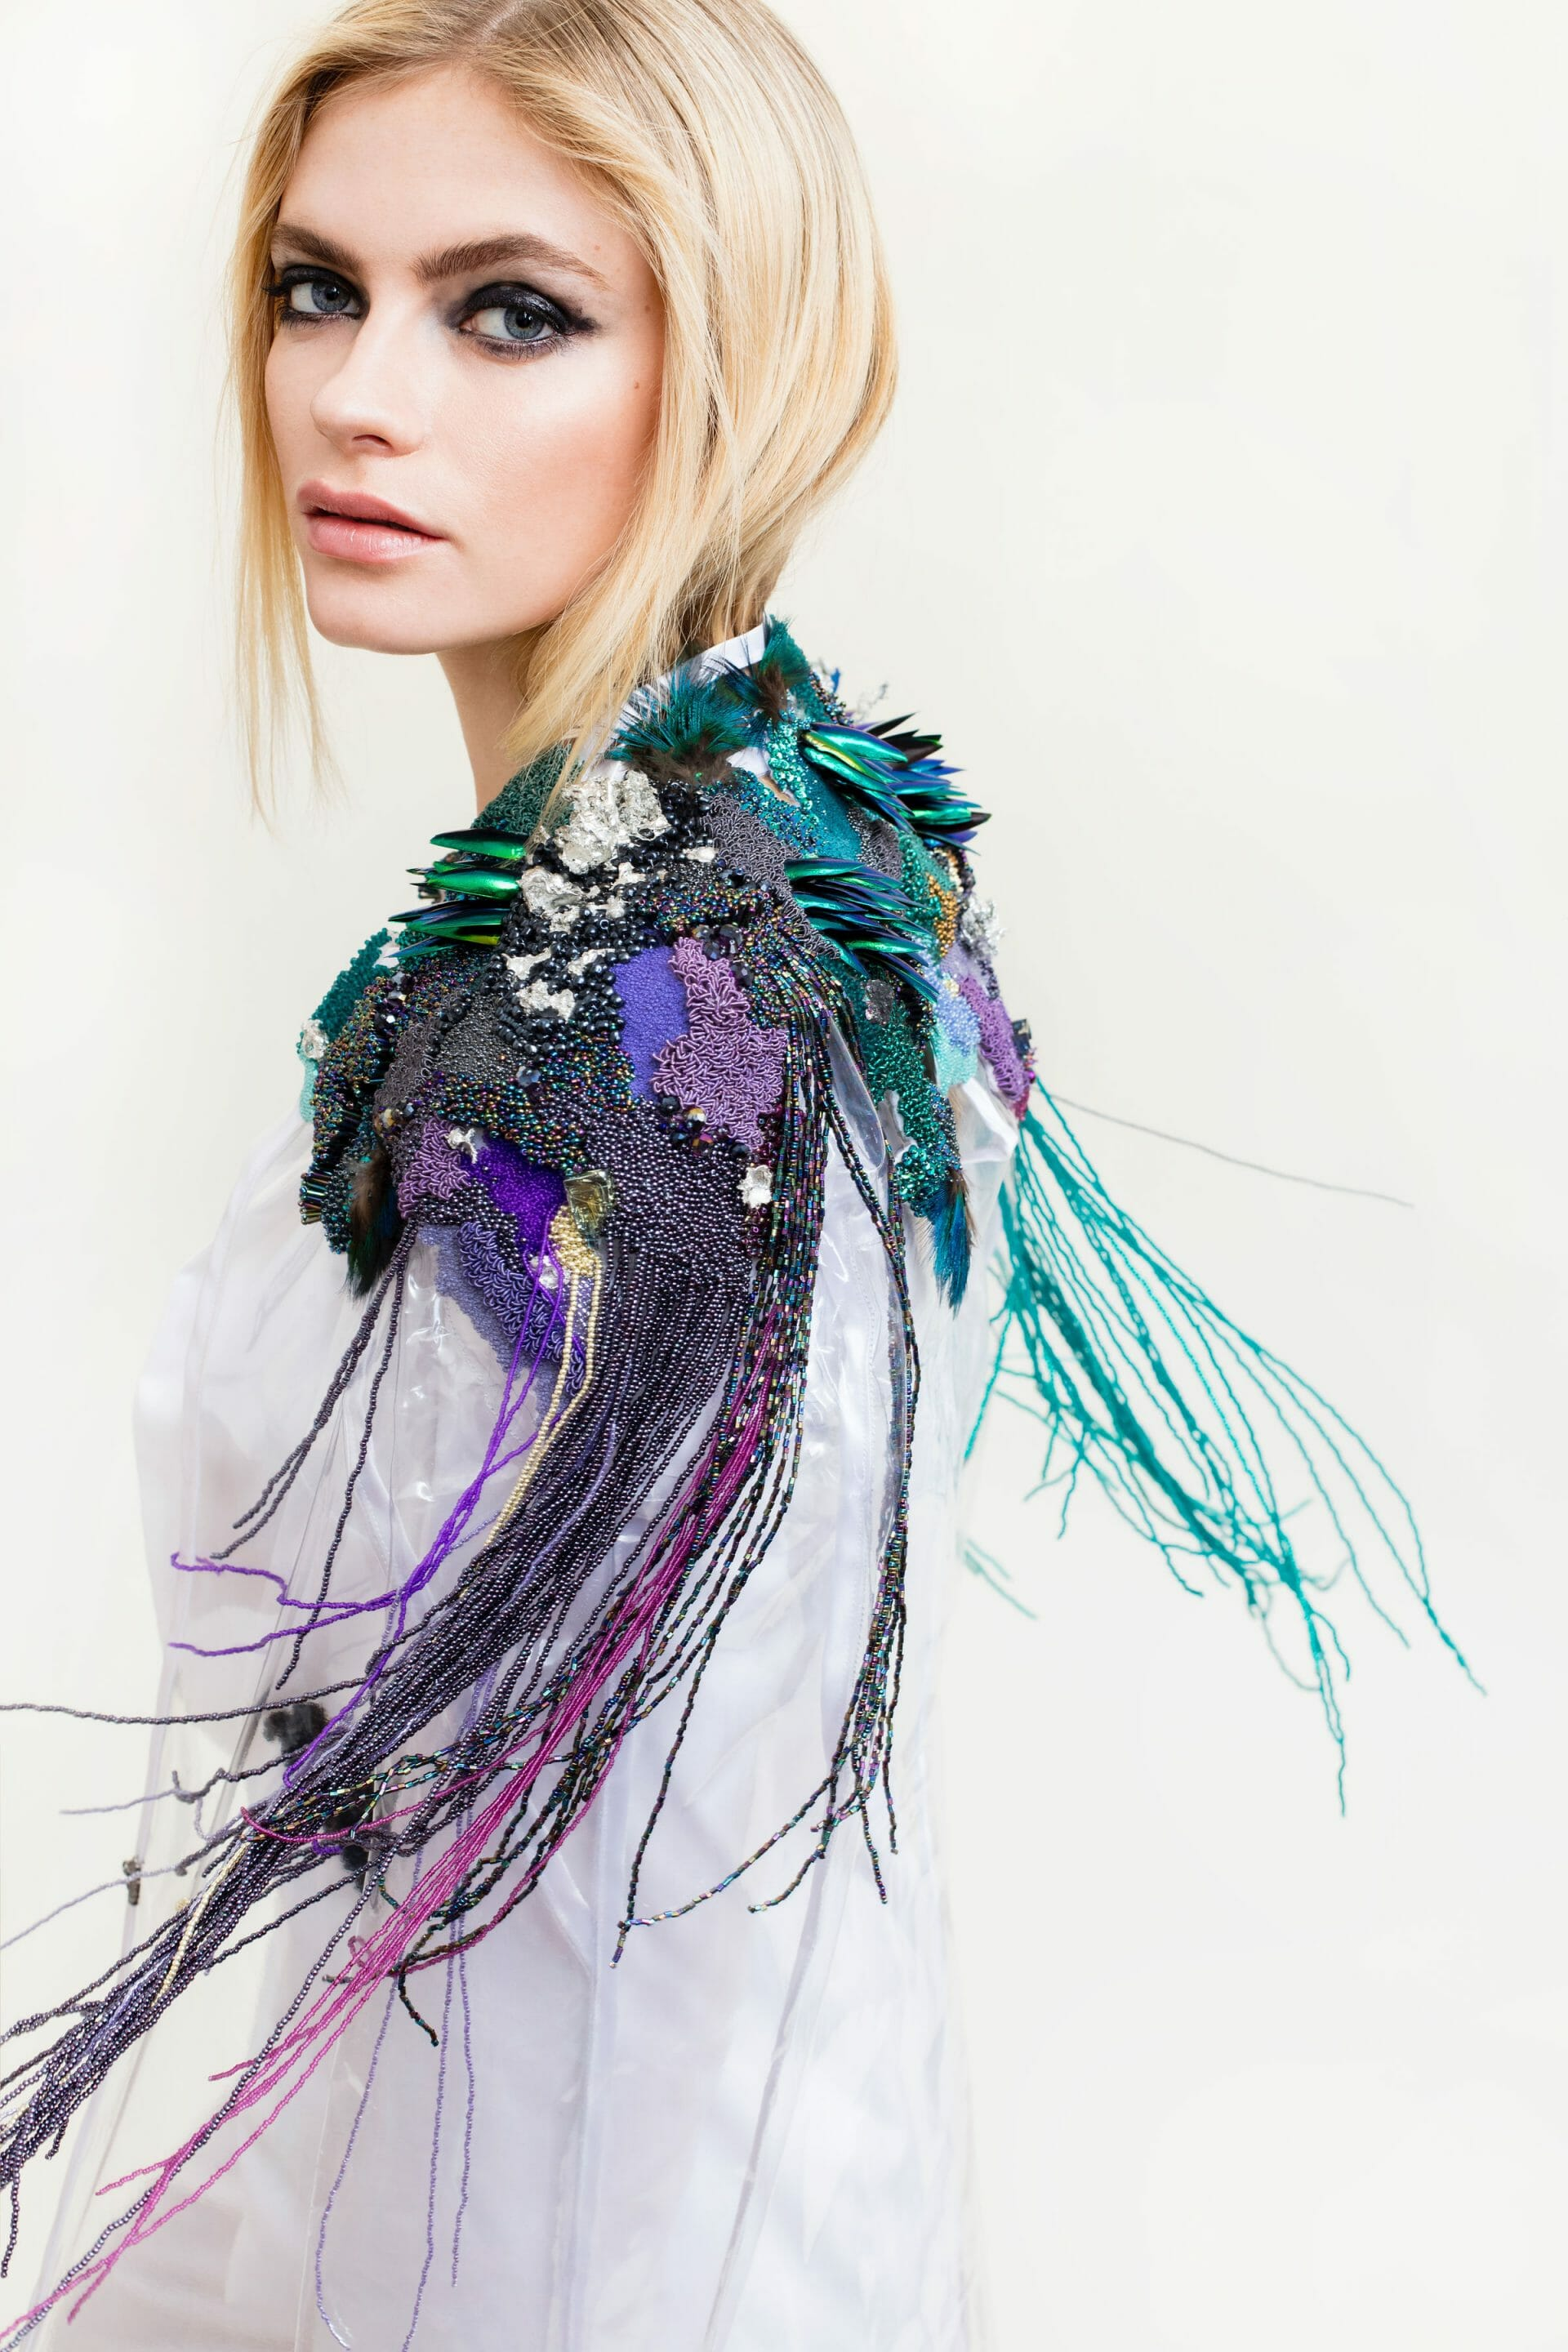 Emma Wilkinson 1st Prize Winner in the Hand Embroidery Fashion, Student Category